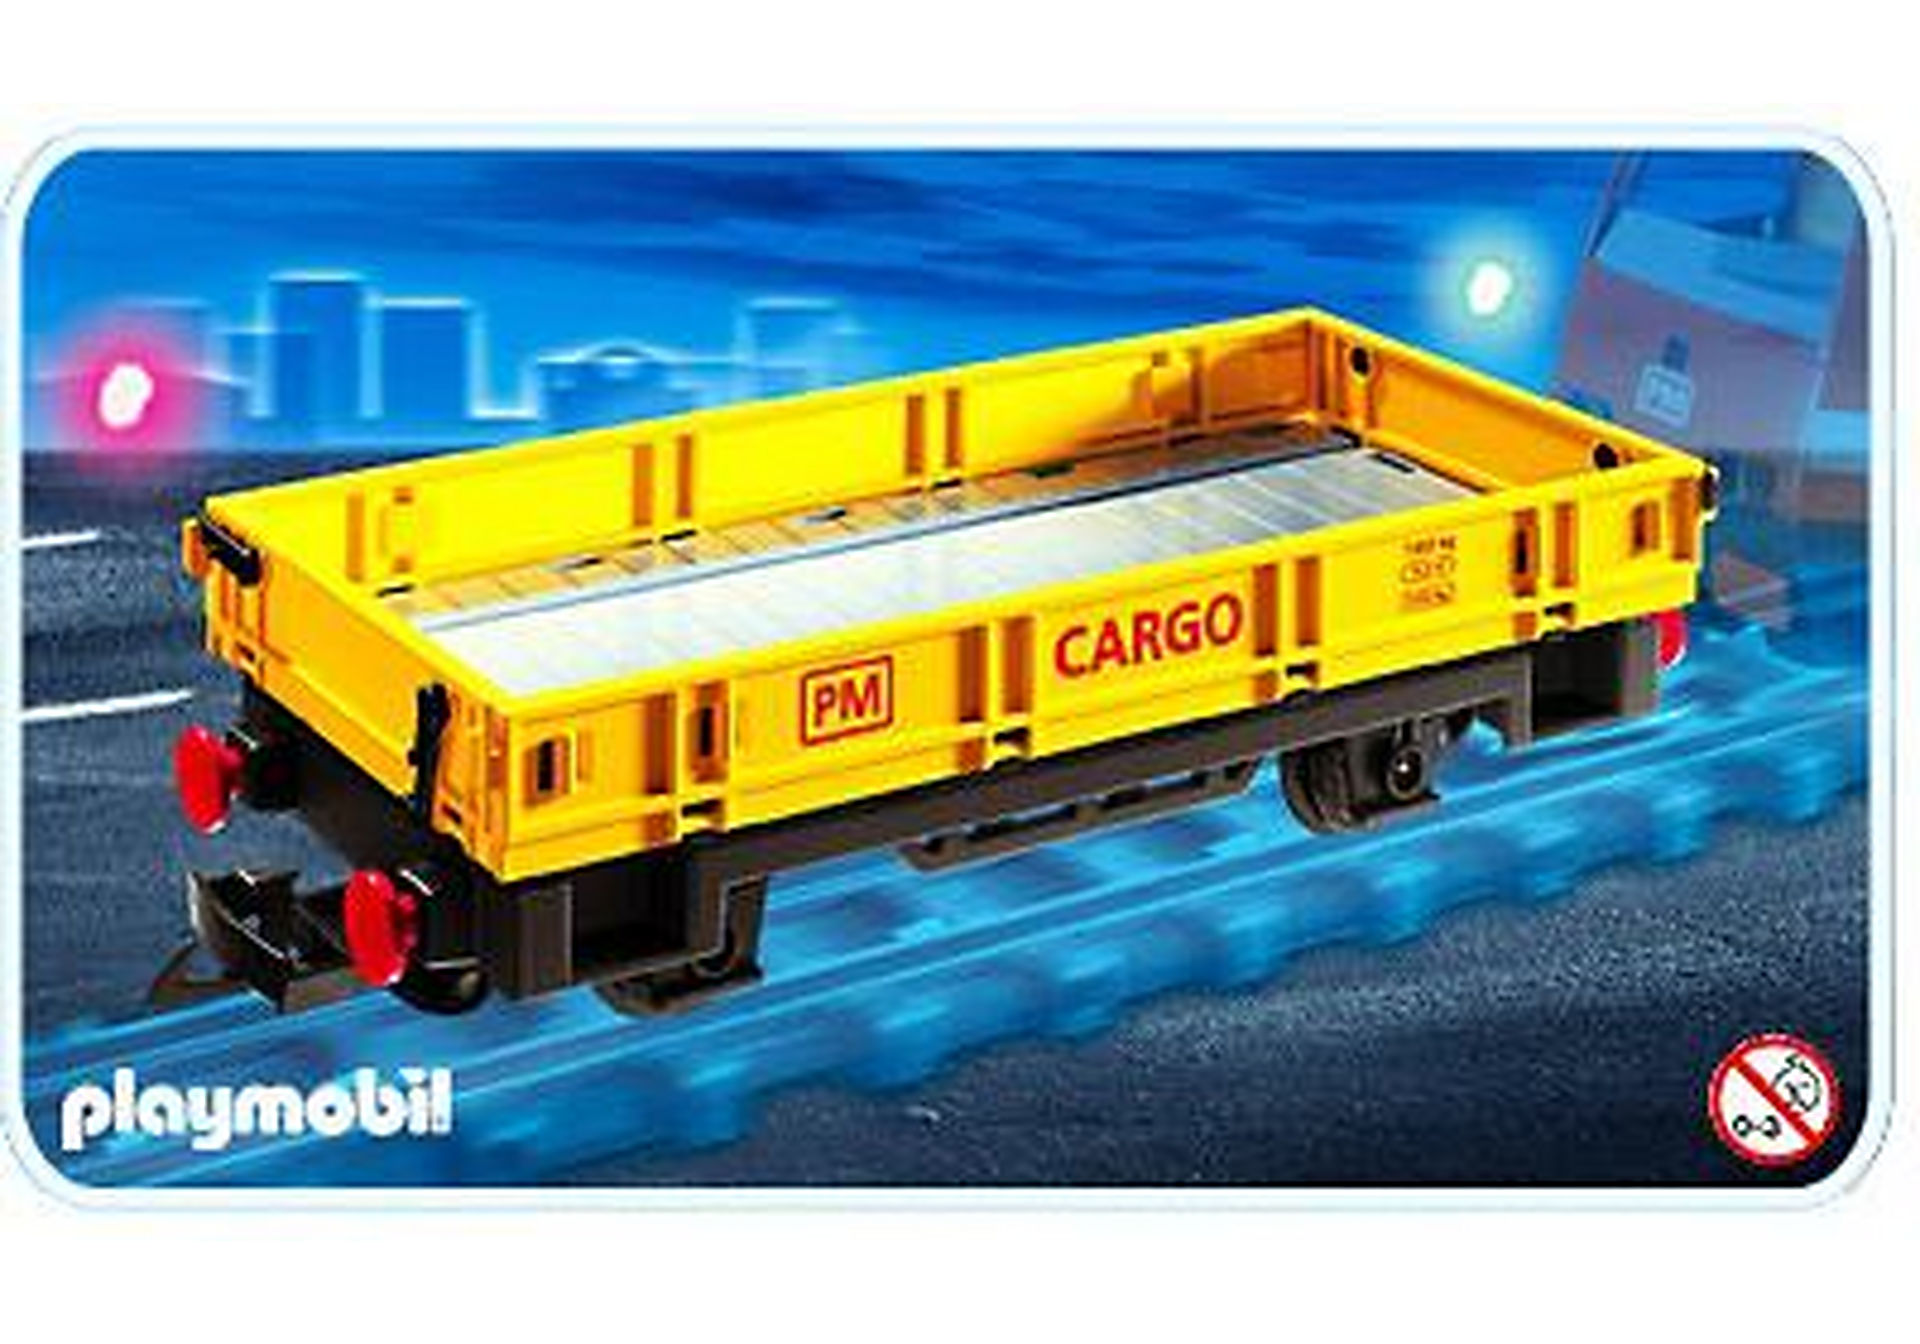 http://media.playmobil.com/i/playmobil/4126-A_product_detail/Niederbordwaggon